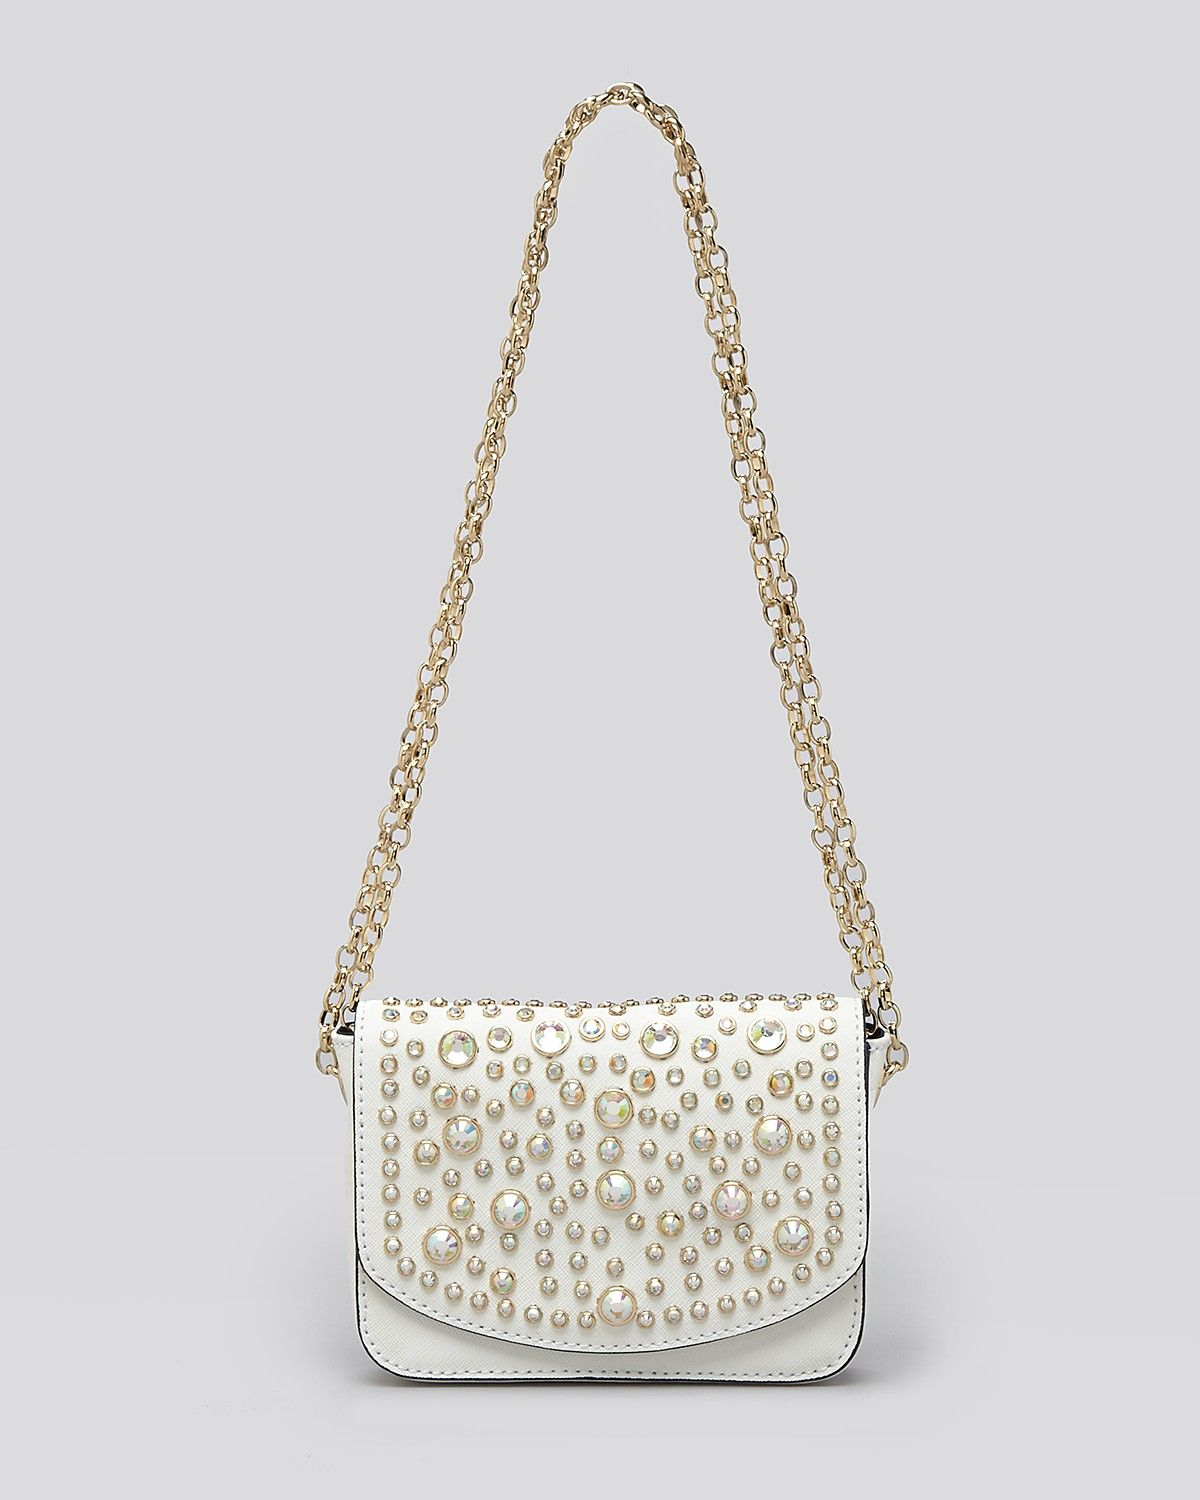 Juicy Couture Mini Bag - Sophia Leather with Stones  204a1f245424